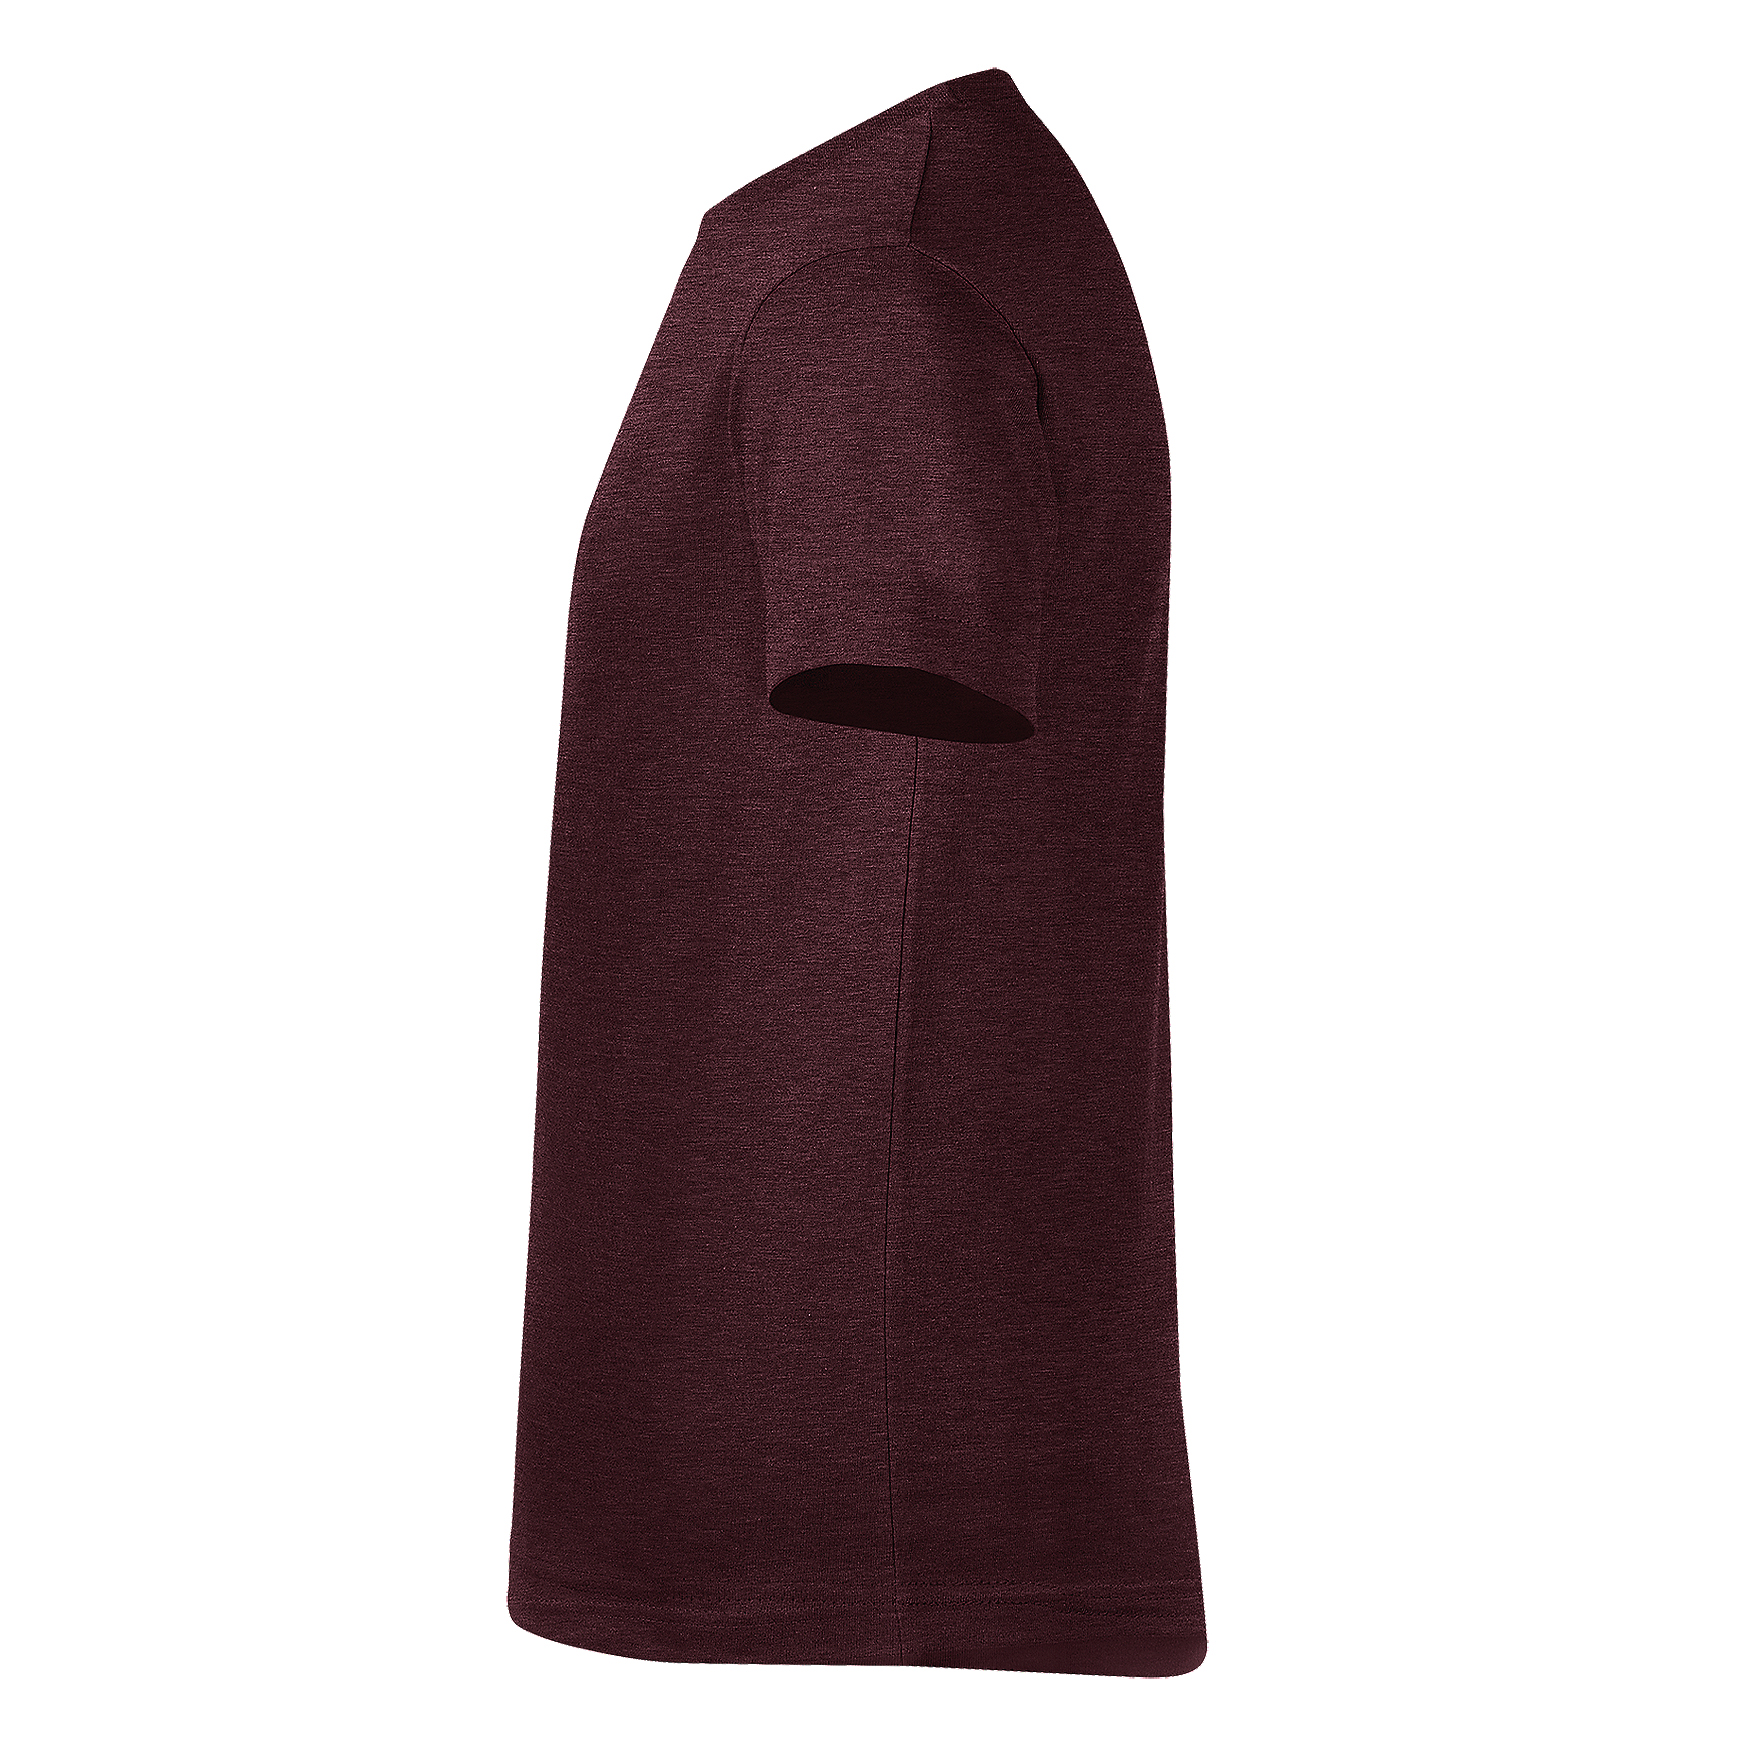 SOLS-Childrens-Kids-Regent-Short-Sleeve-Fitted-T-Shirt-PC2798